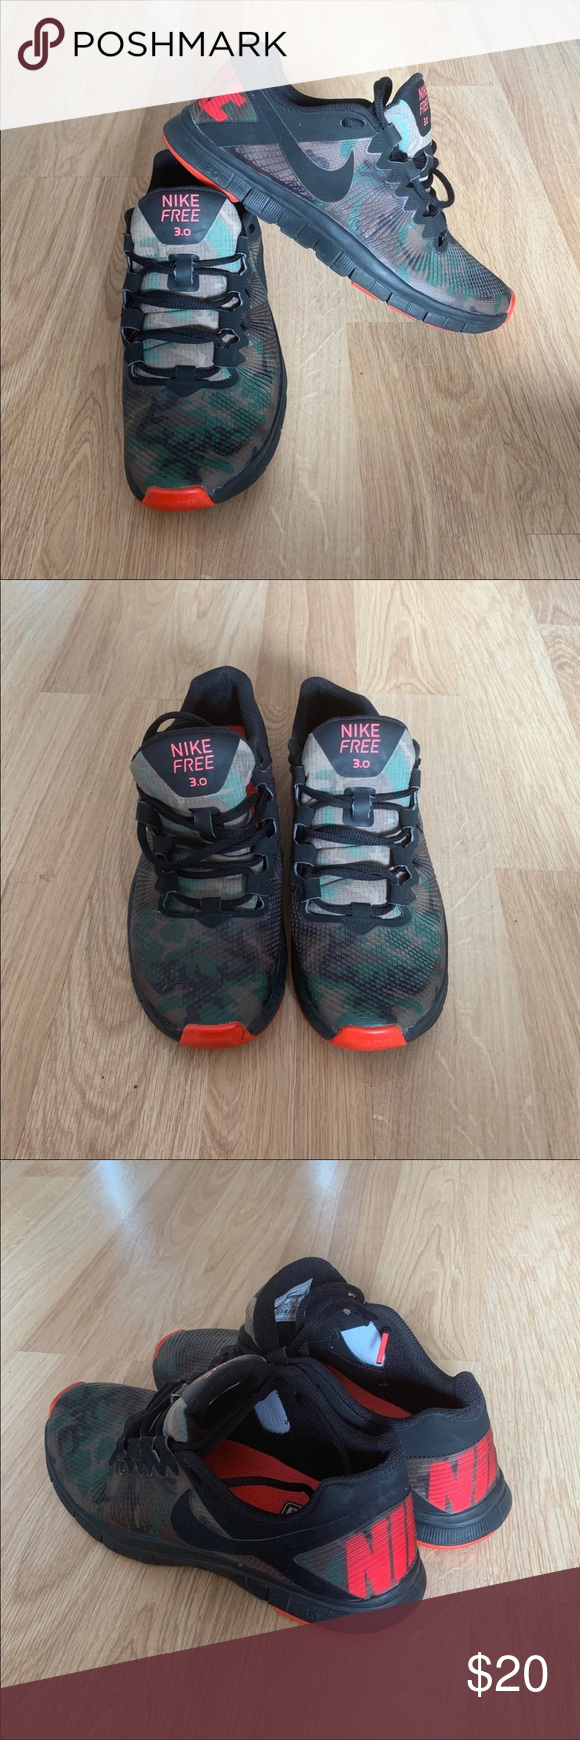 374abb8a51b66 Nike Free 3.0 Camo Green and Orange Good preowned condition. Nike Shoes  Sneakers